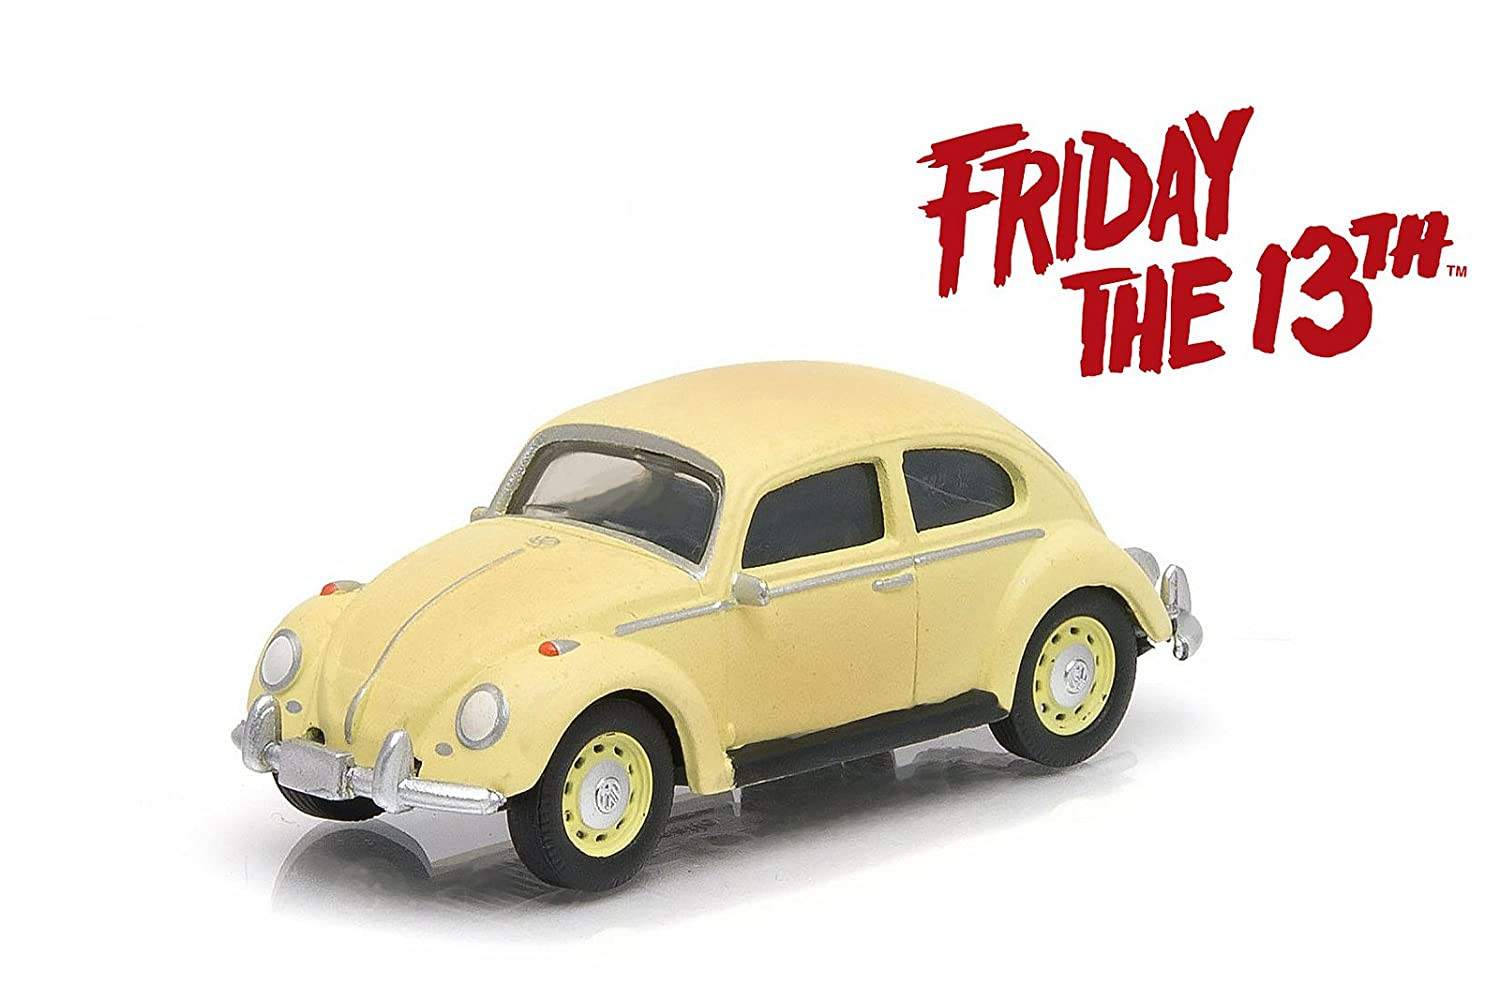 1963 Volkswagen Beetle Friday The 13th Part III 1982 Movie Hollywood Series 9 1 64 by Greenlight 44690 D